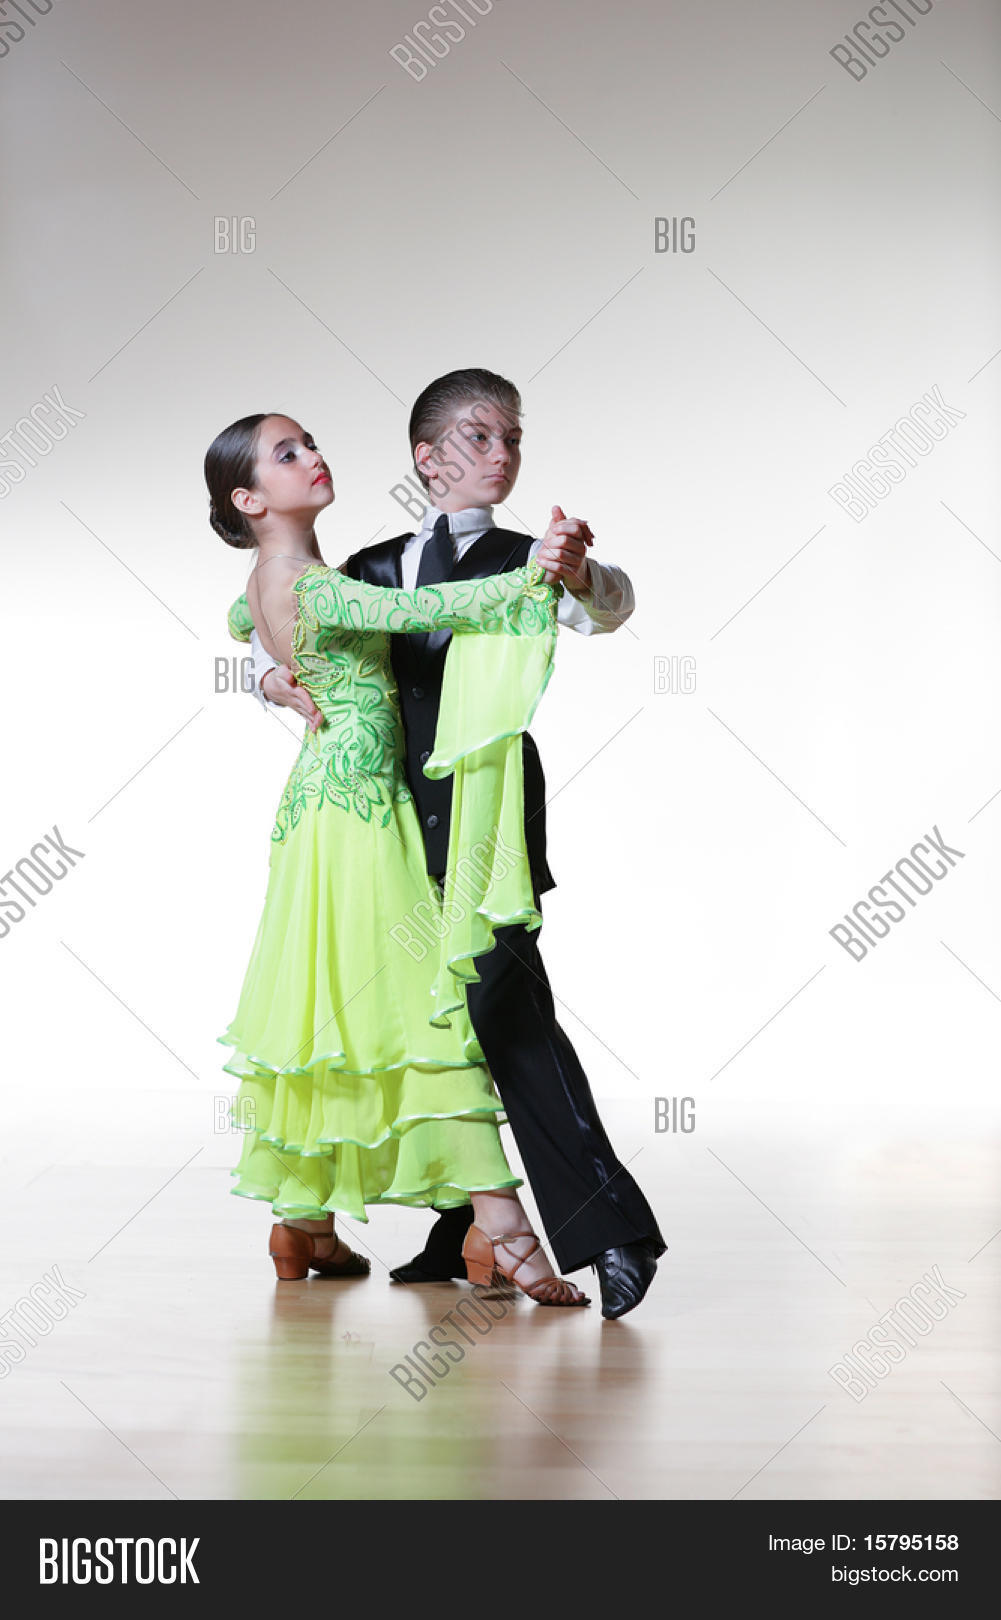 Images of girl and boy in love